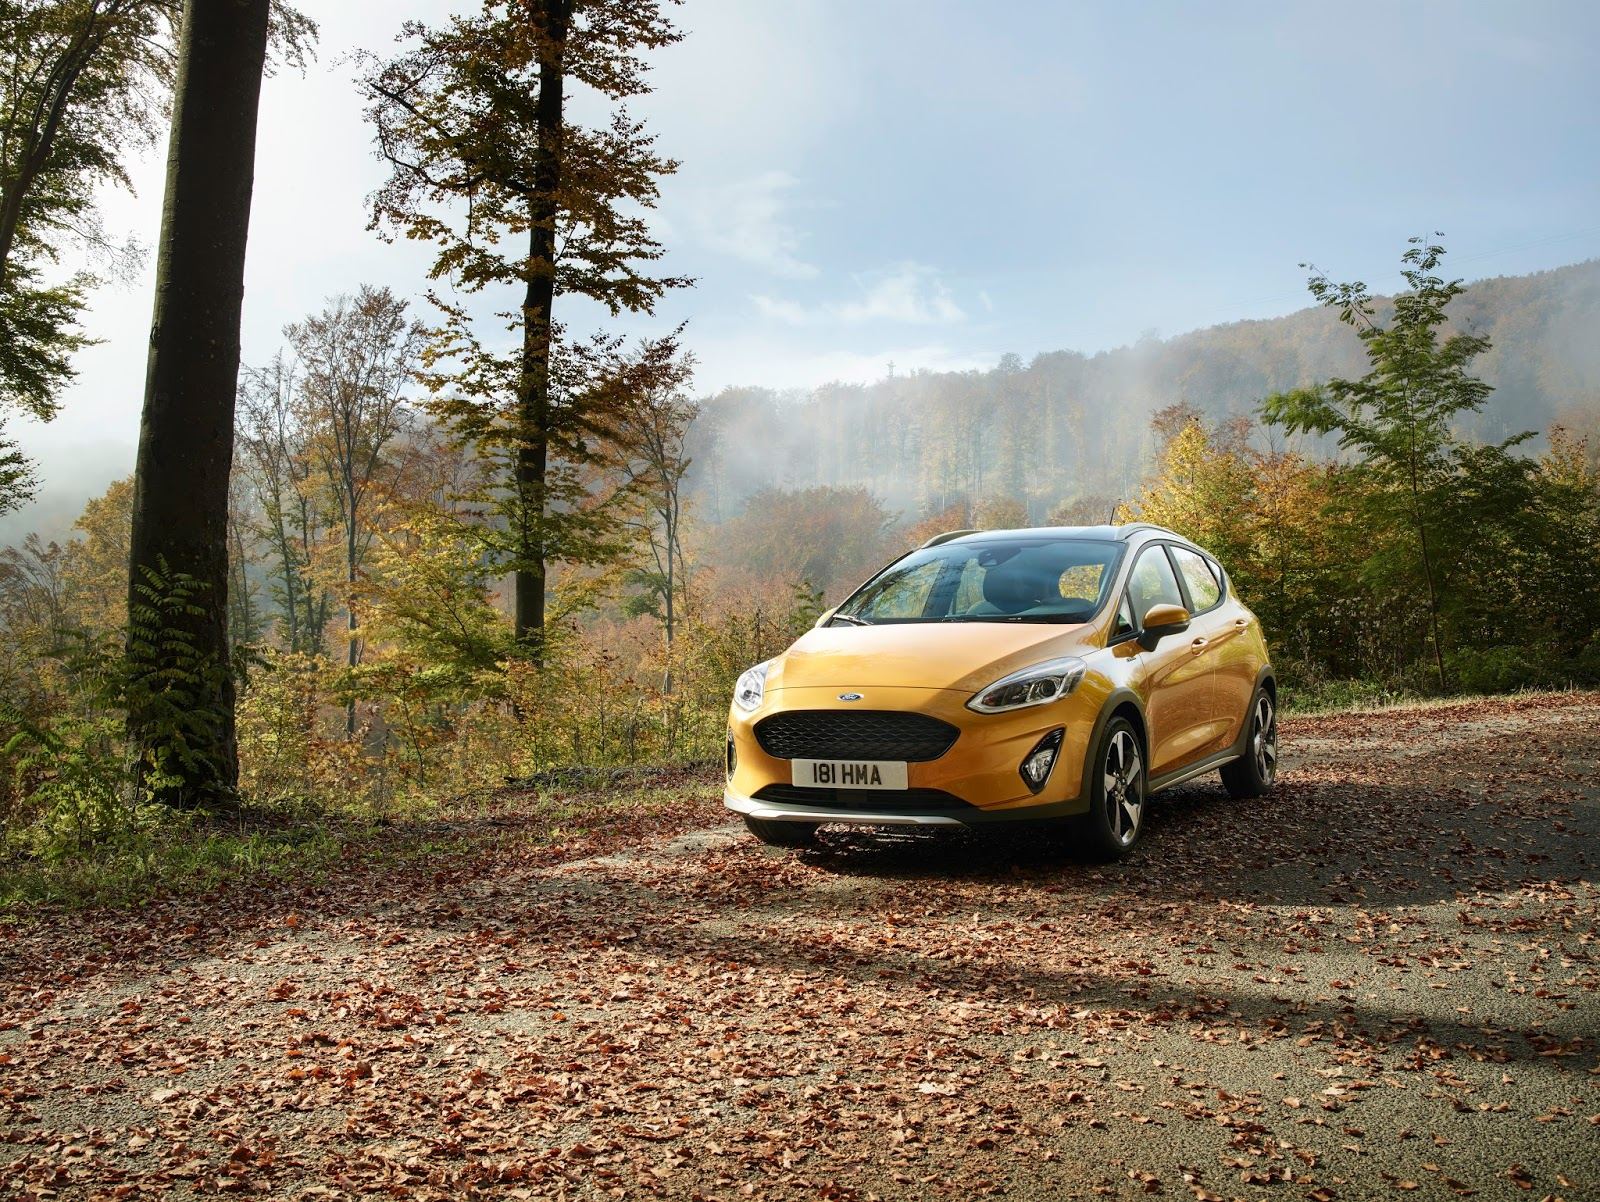 FORD FIESTA2016 ACTIVE 34 FRONT BEAUTY 02 Τα πρώτα Ford Fiesta έρχονται στην Ελλάδα, με τιμή από 12.990€ Bestseller, Ford, Ford Fiesta, supermini, Λανσάρισμα